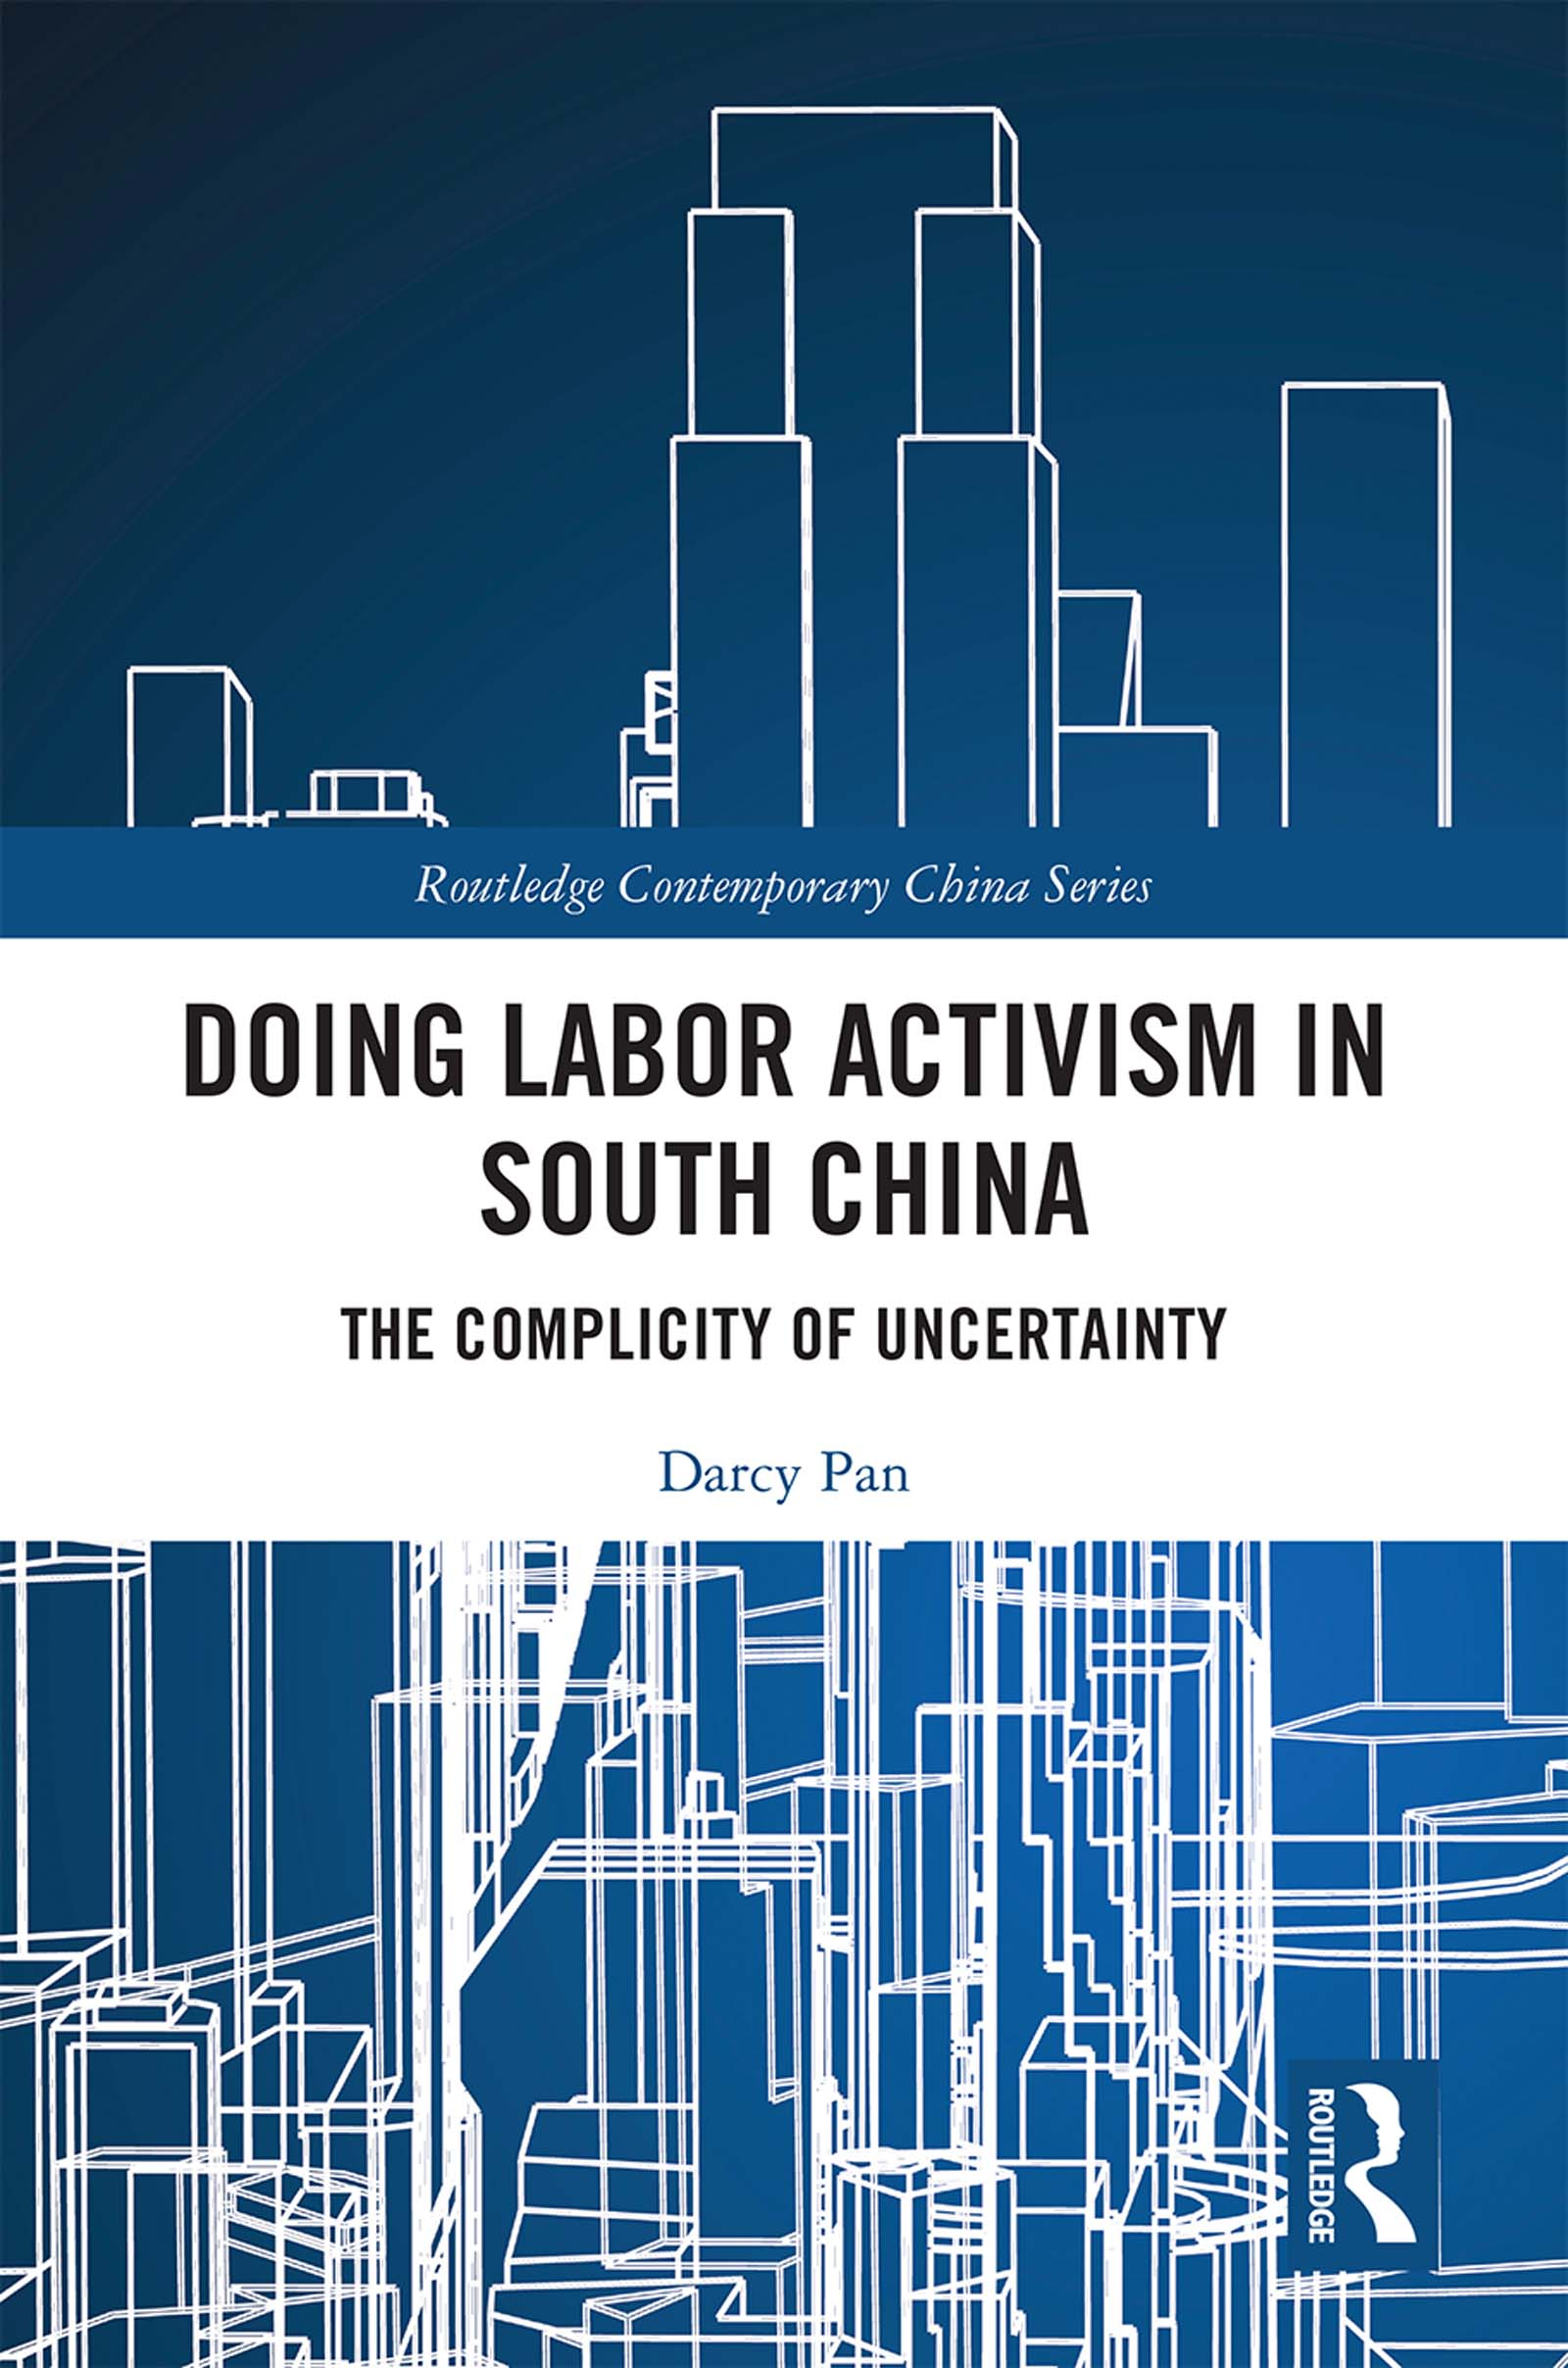 Doing Labor Activism in South China